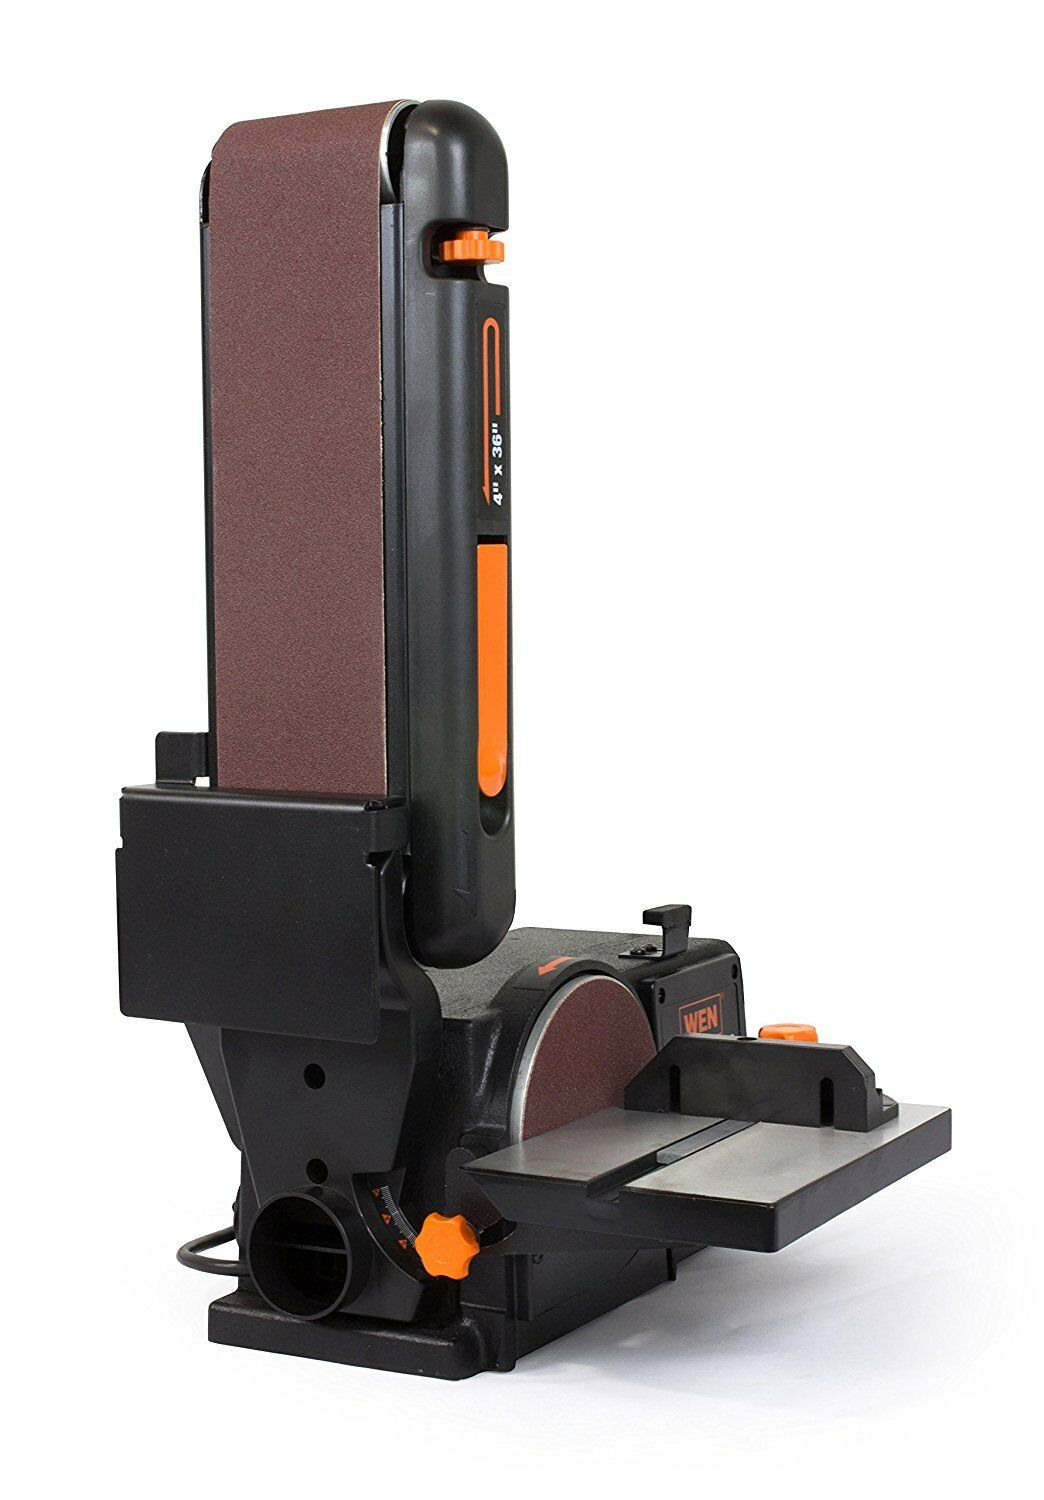 6-Inch Disc Sander Two-in-one Sanding Machine 4 x 36-Inch Be